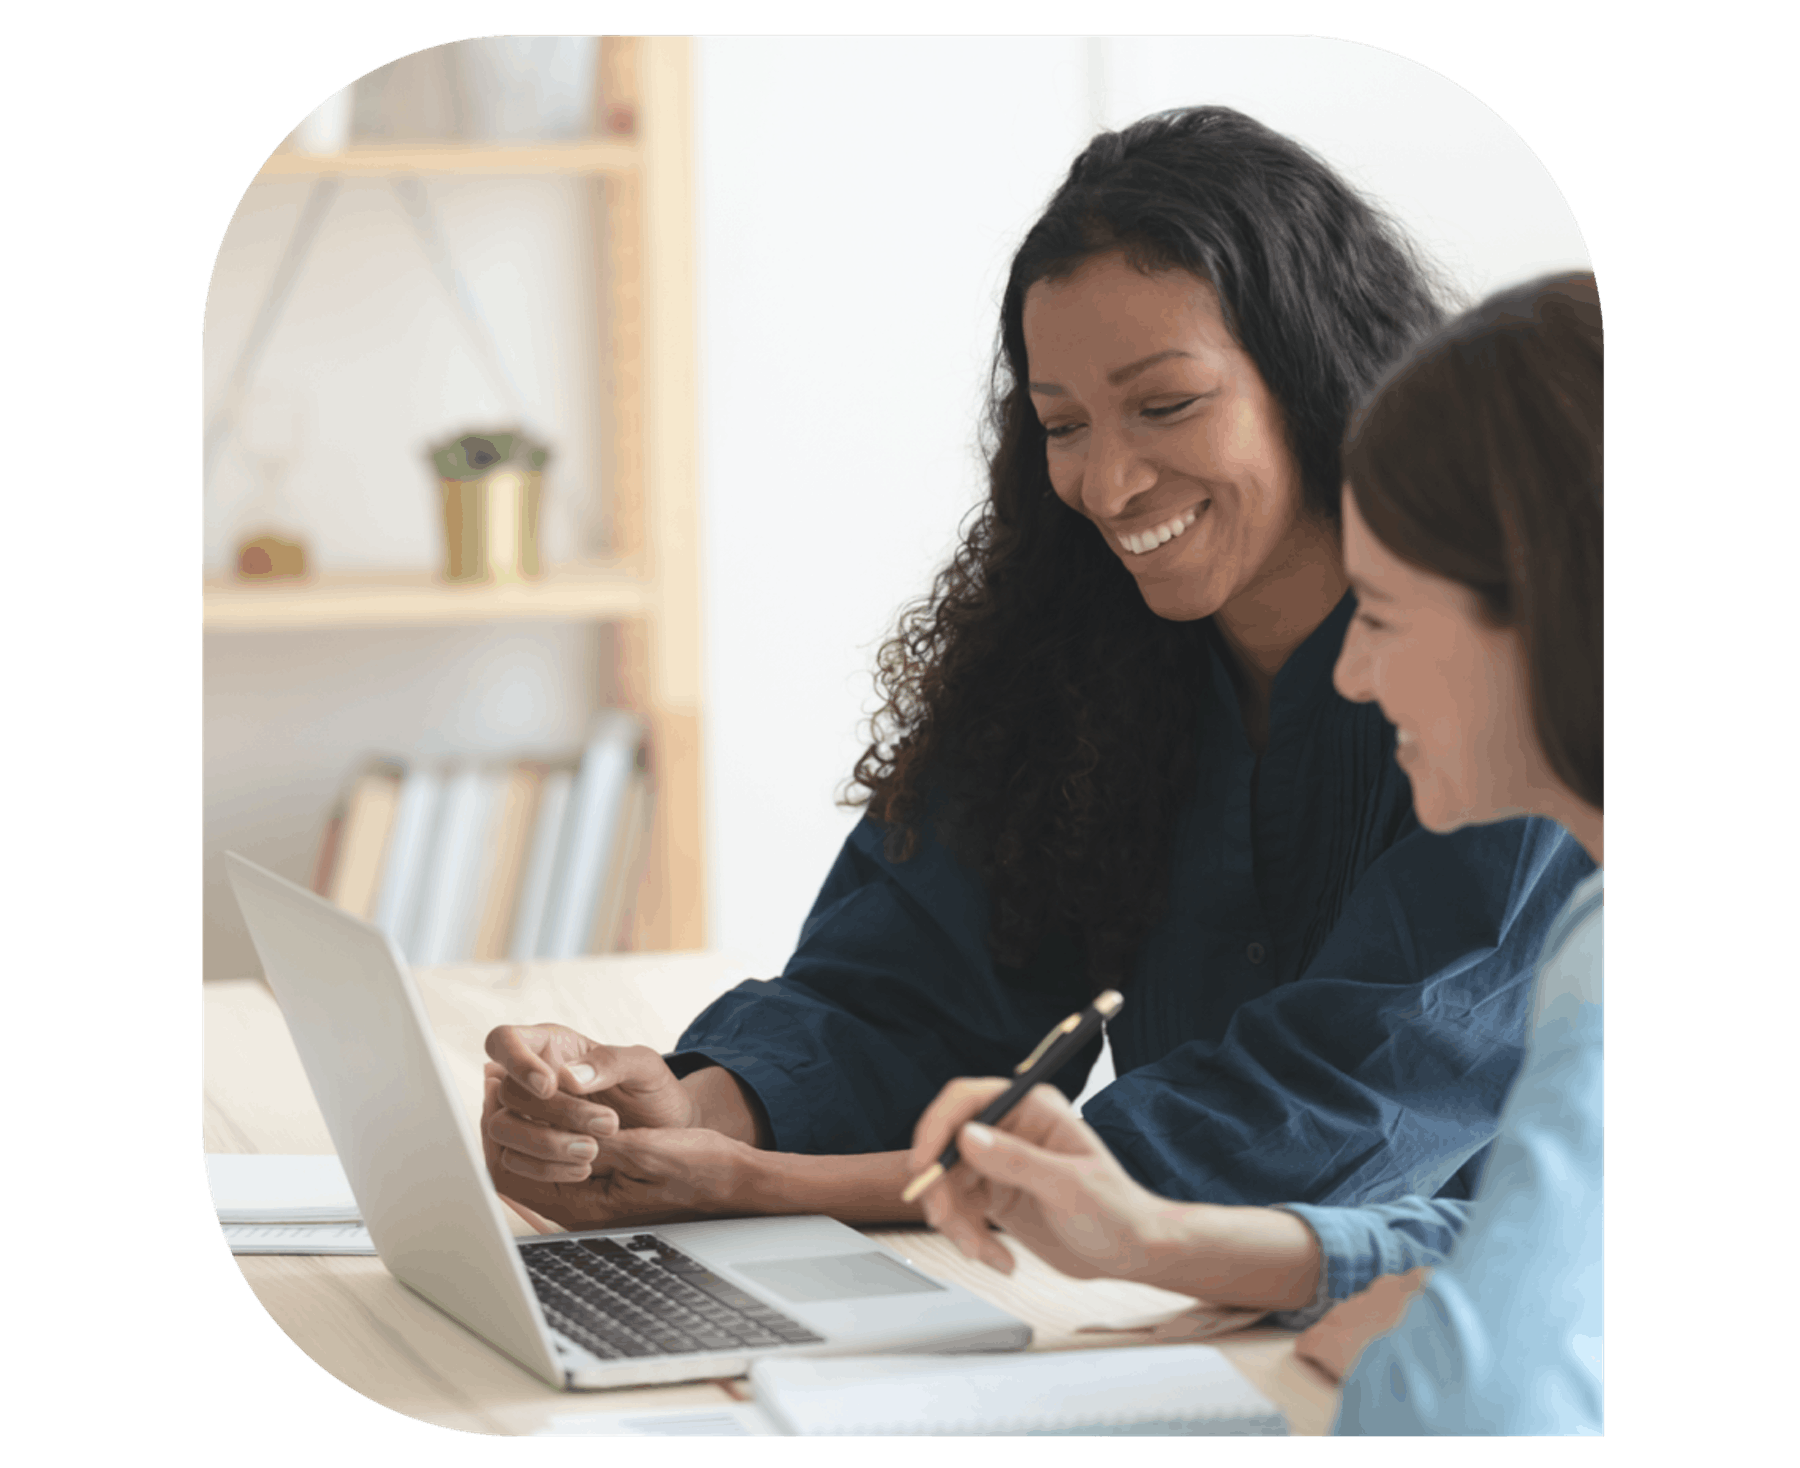 Women looking at the computer and smiling